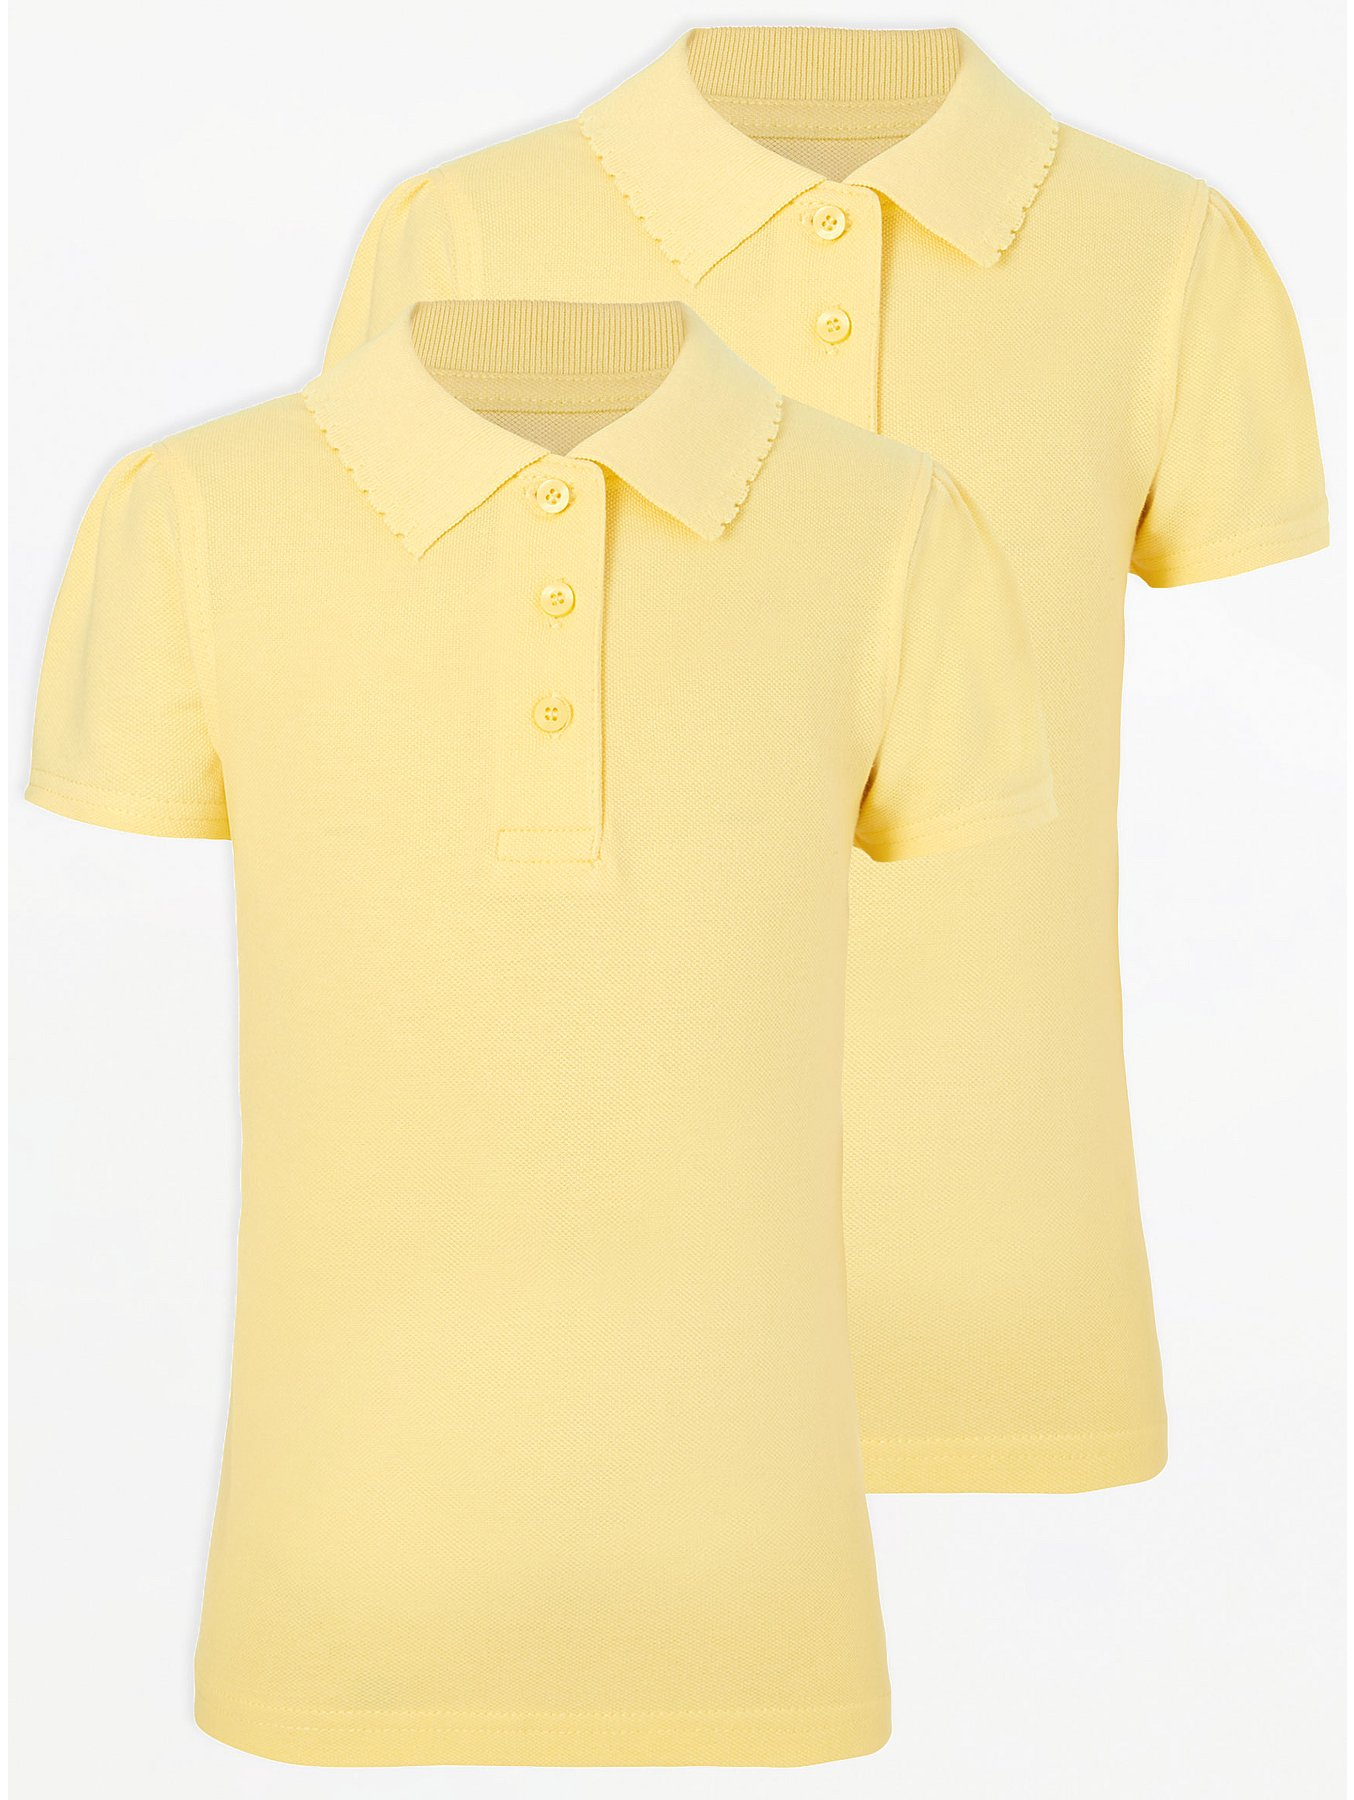 6d4108d8 Girls Yellow Scallop School Polo Shirt 2 Pack | School | George